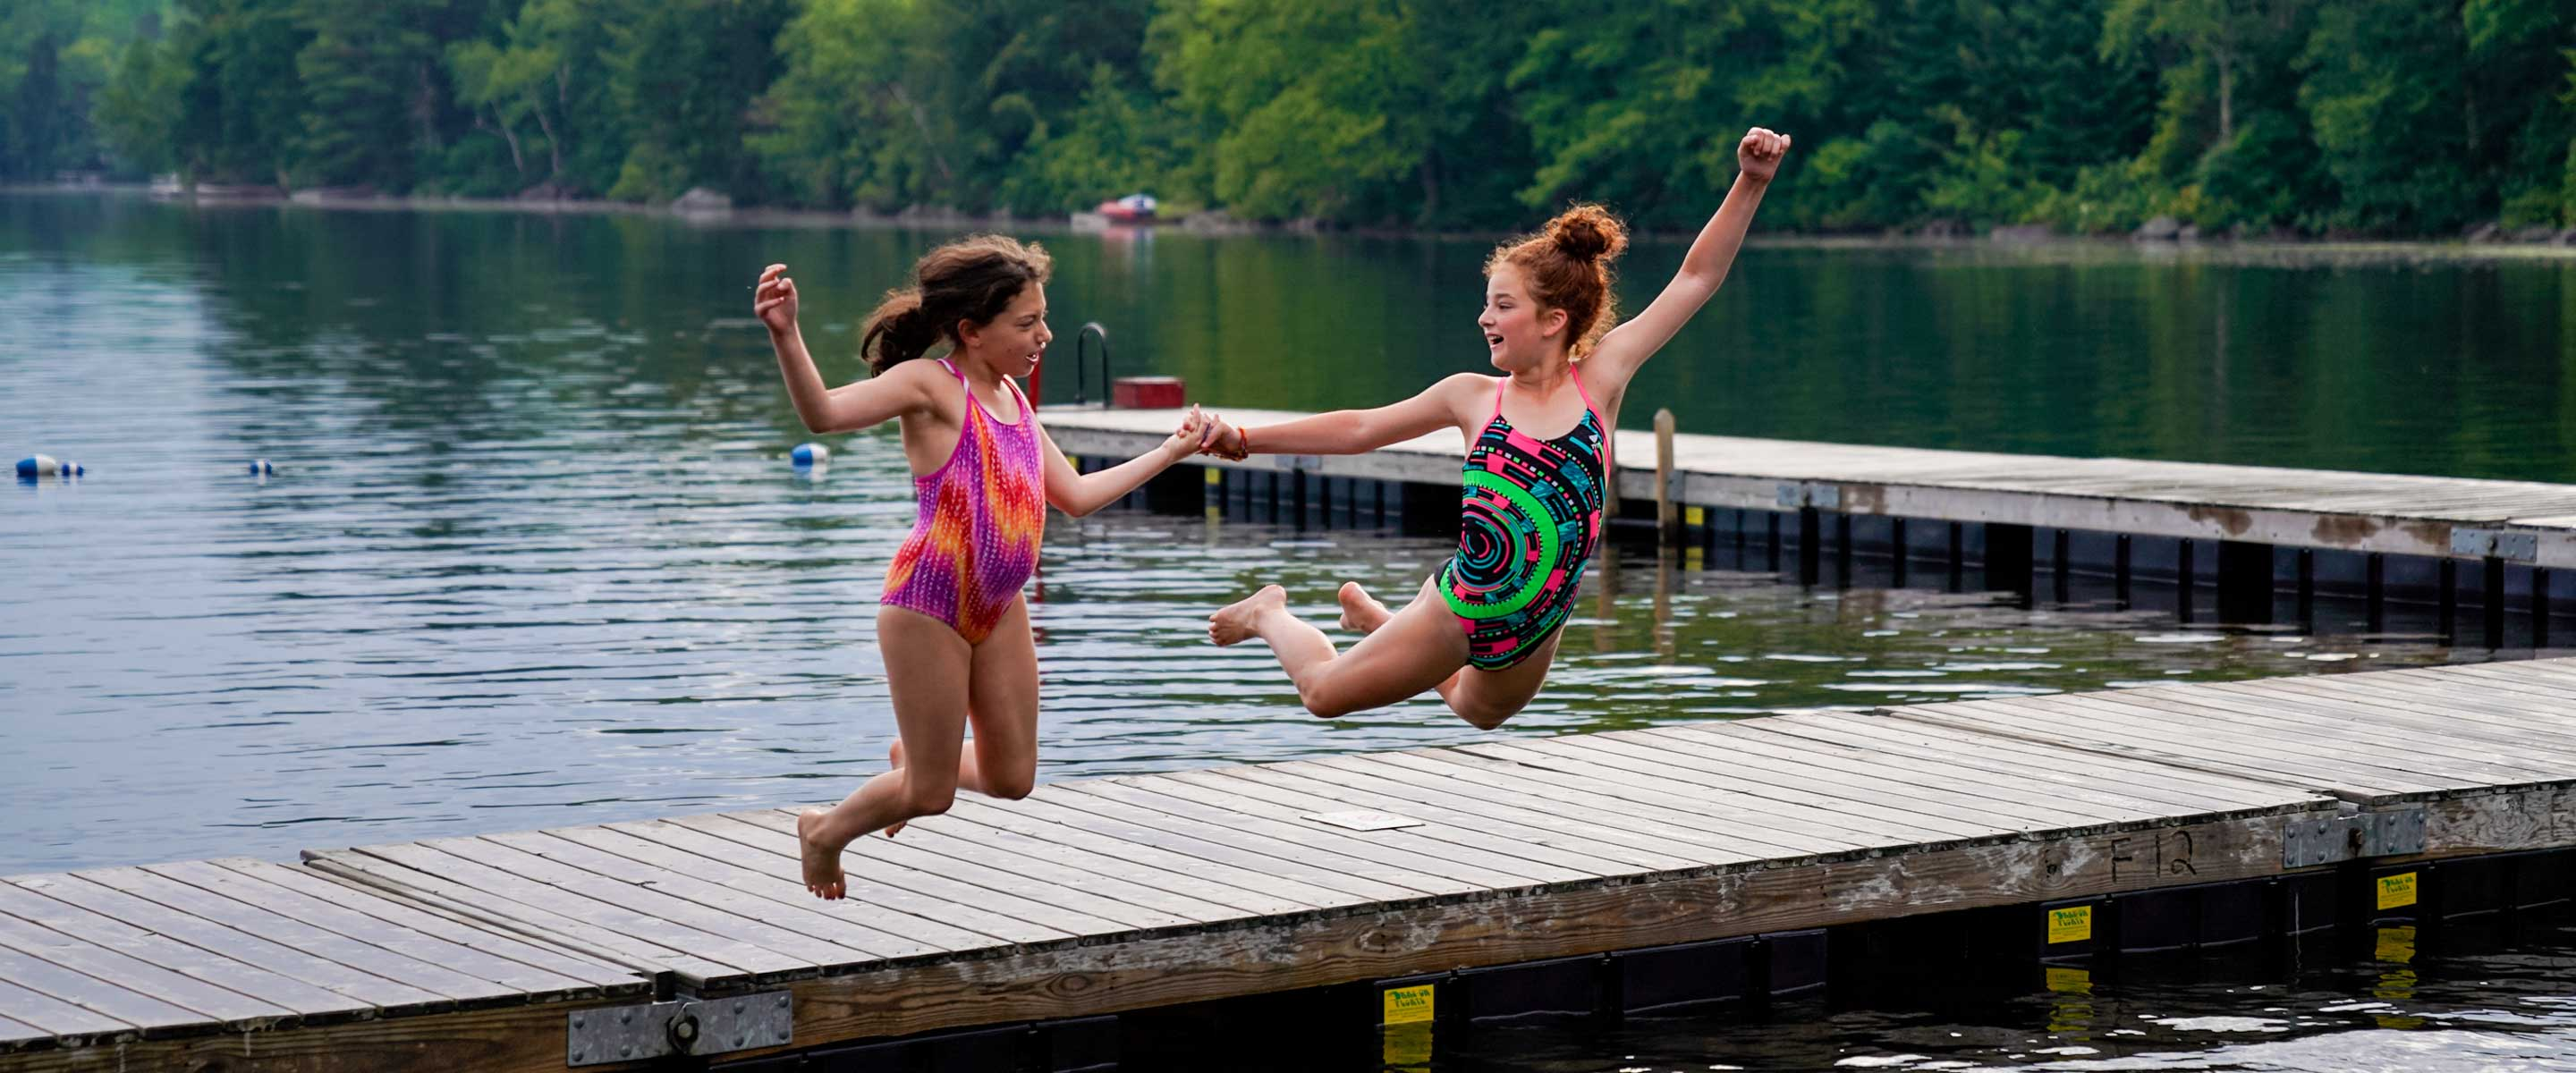 two young girls jumping into the lake from a dock